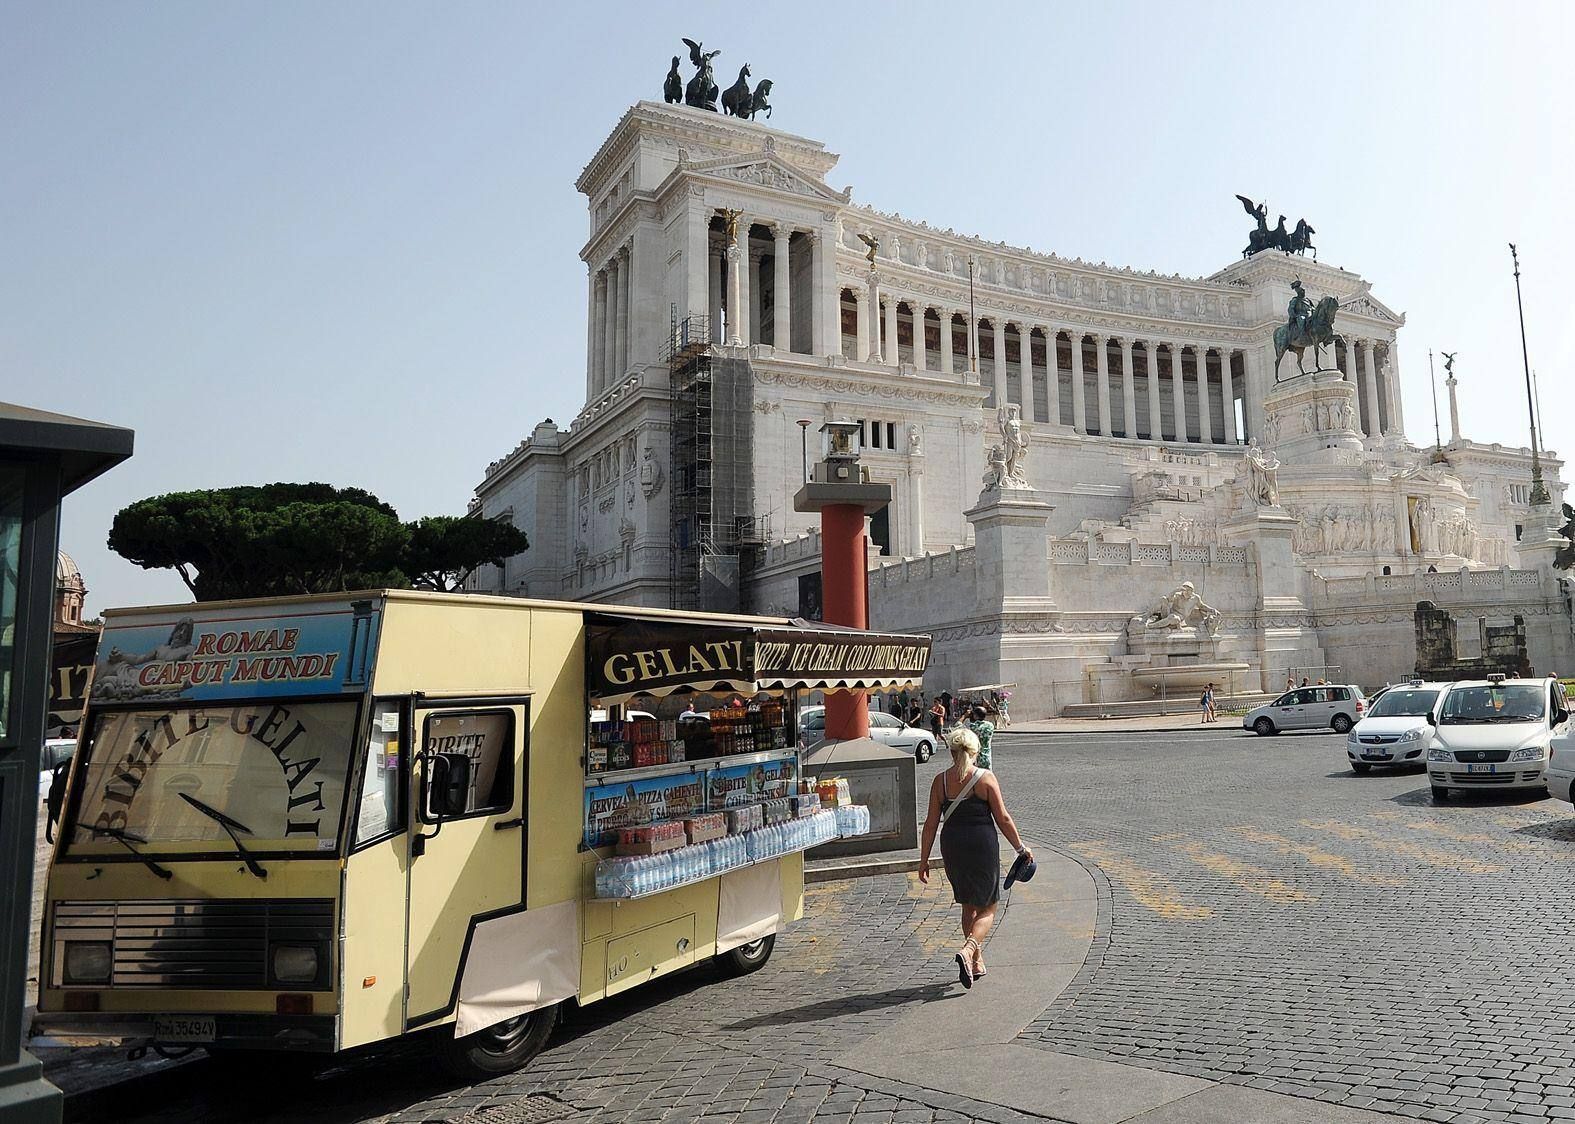 Un camion-bar fermo in piazza Venezia (Jpeg)